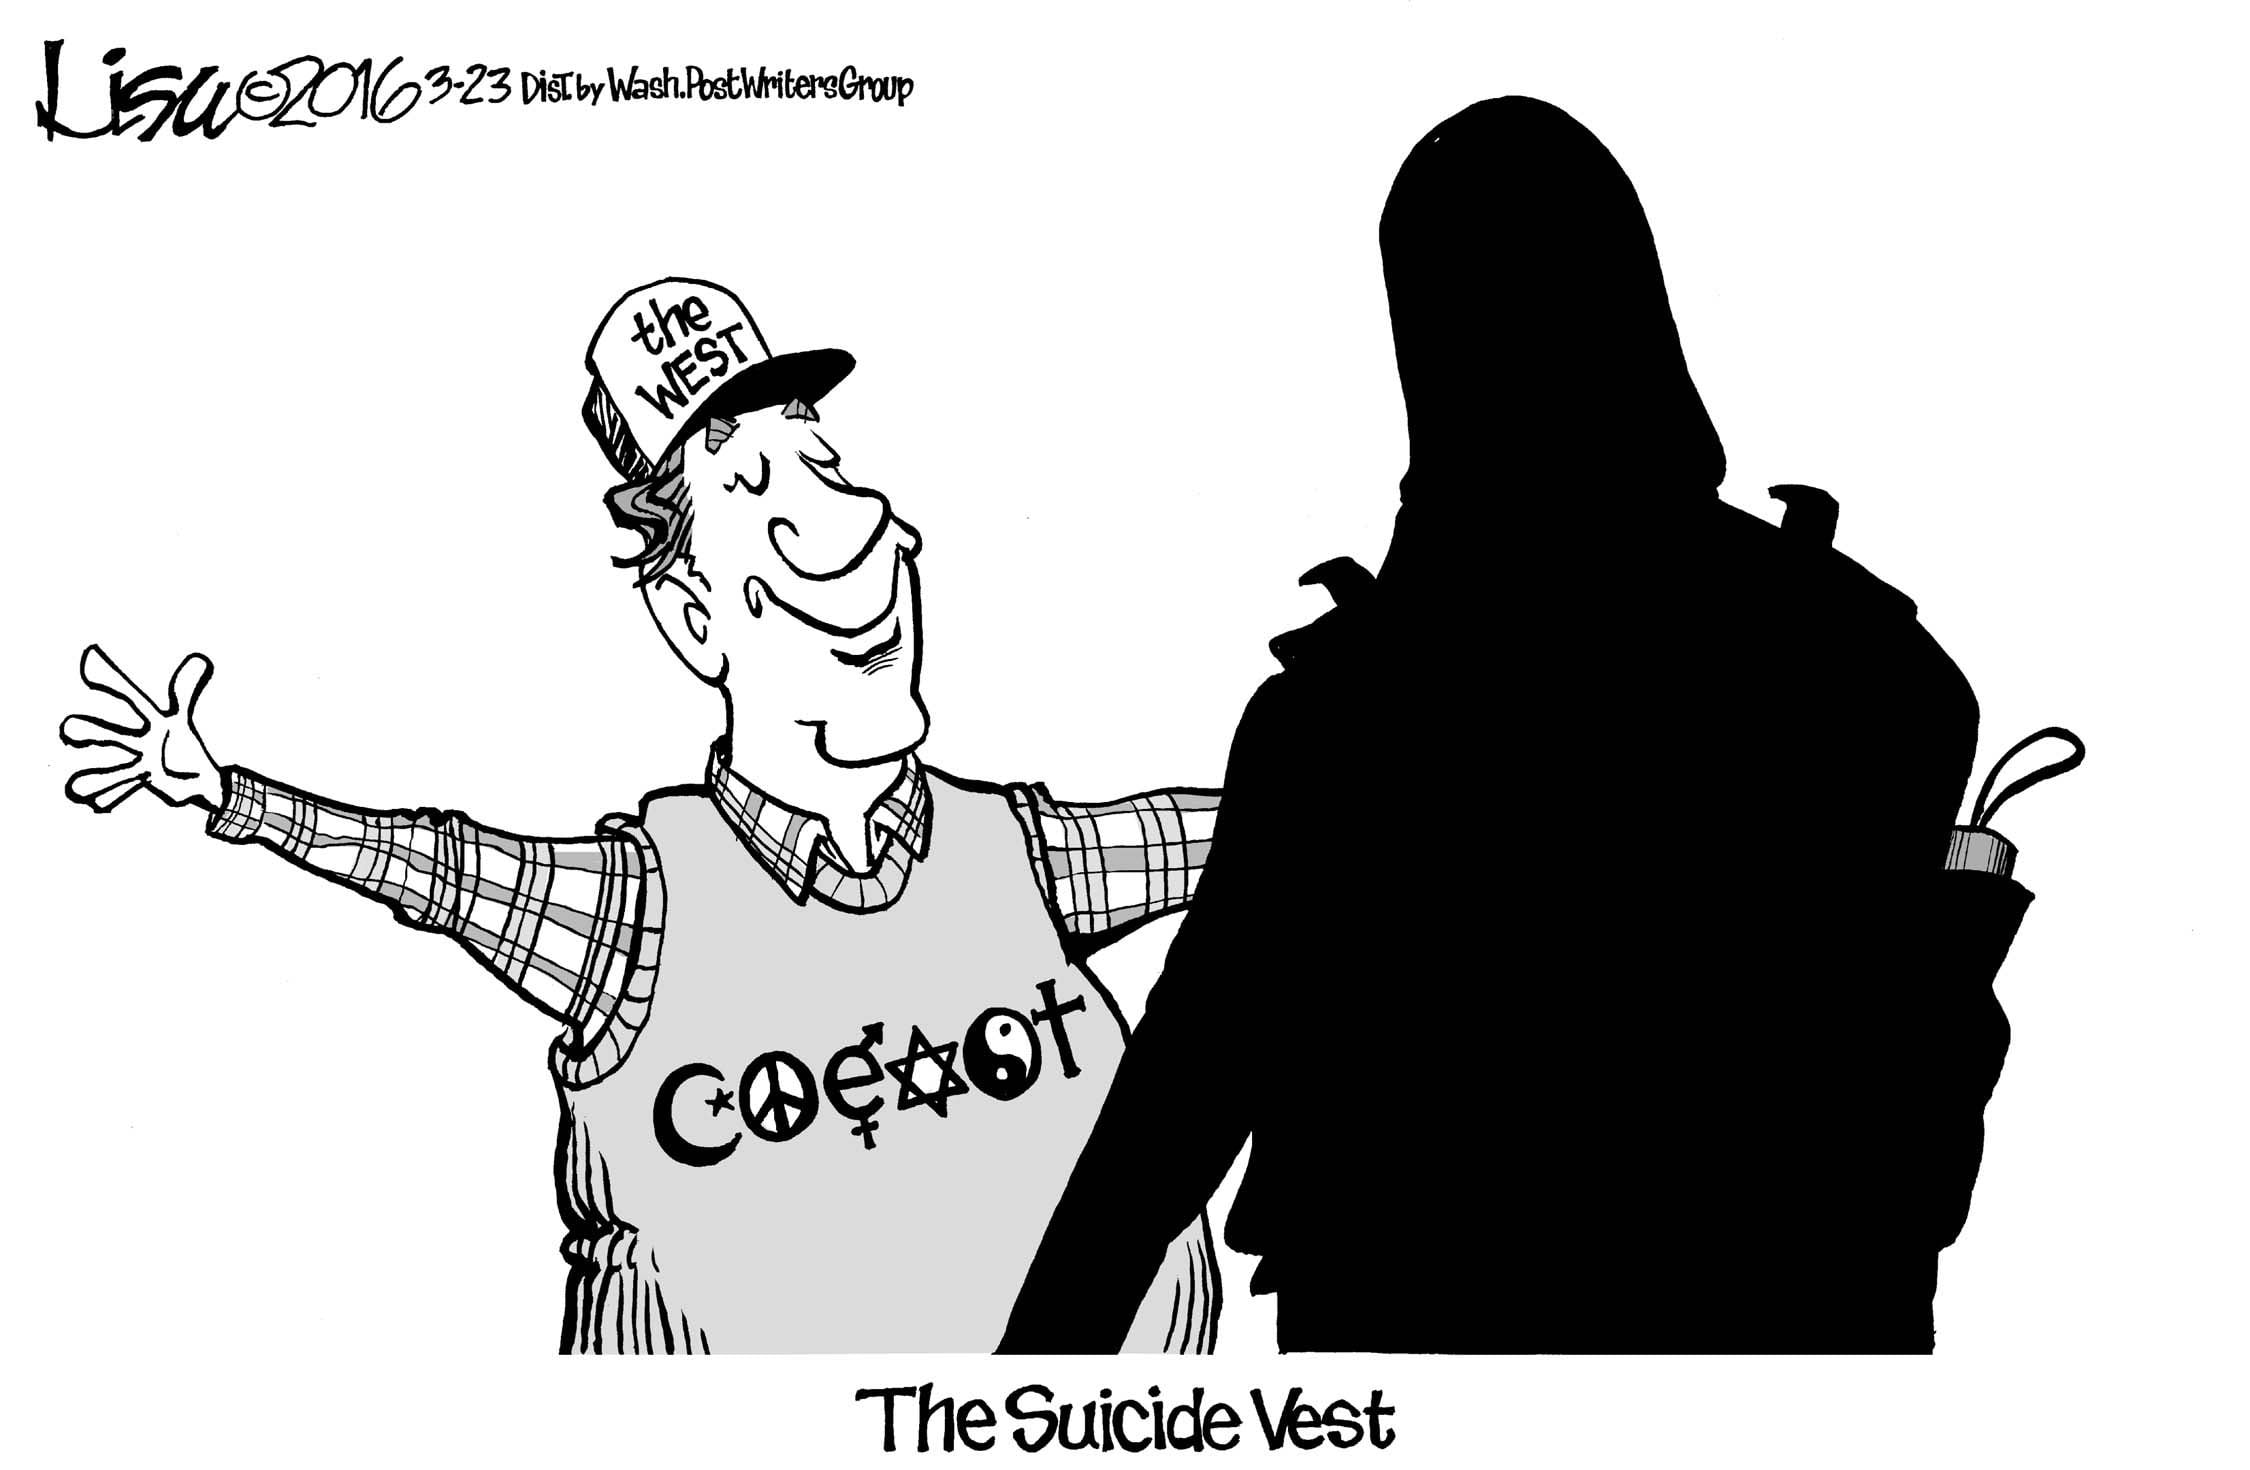 March 26: Coexist